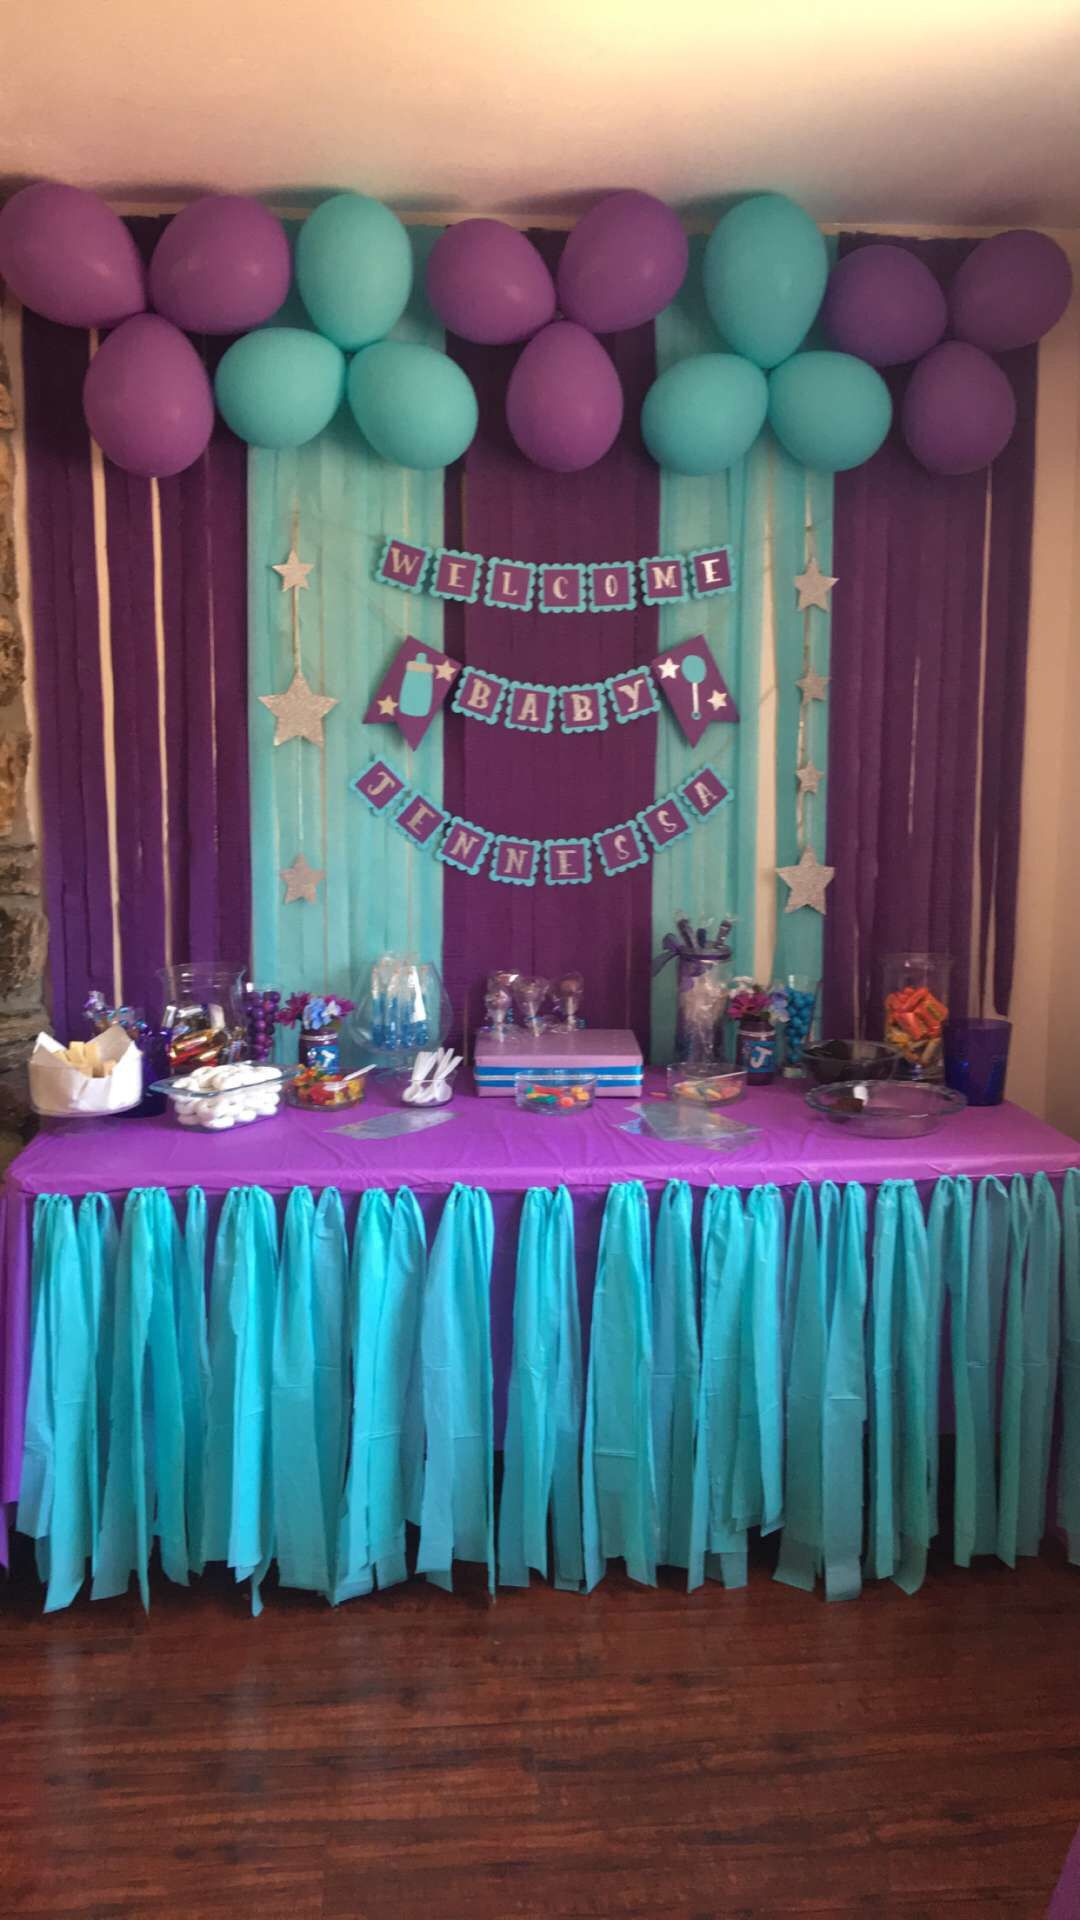 Baby shower banner purple turquoise | Partydecormadebymayra ...